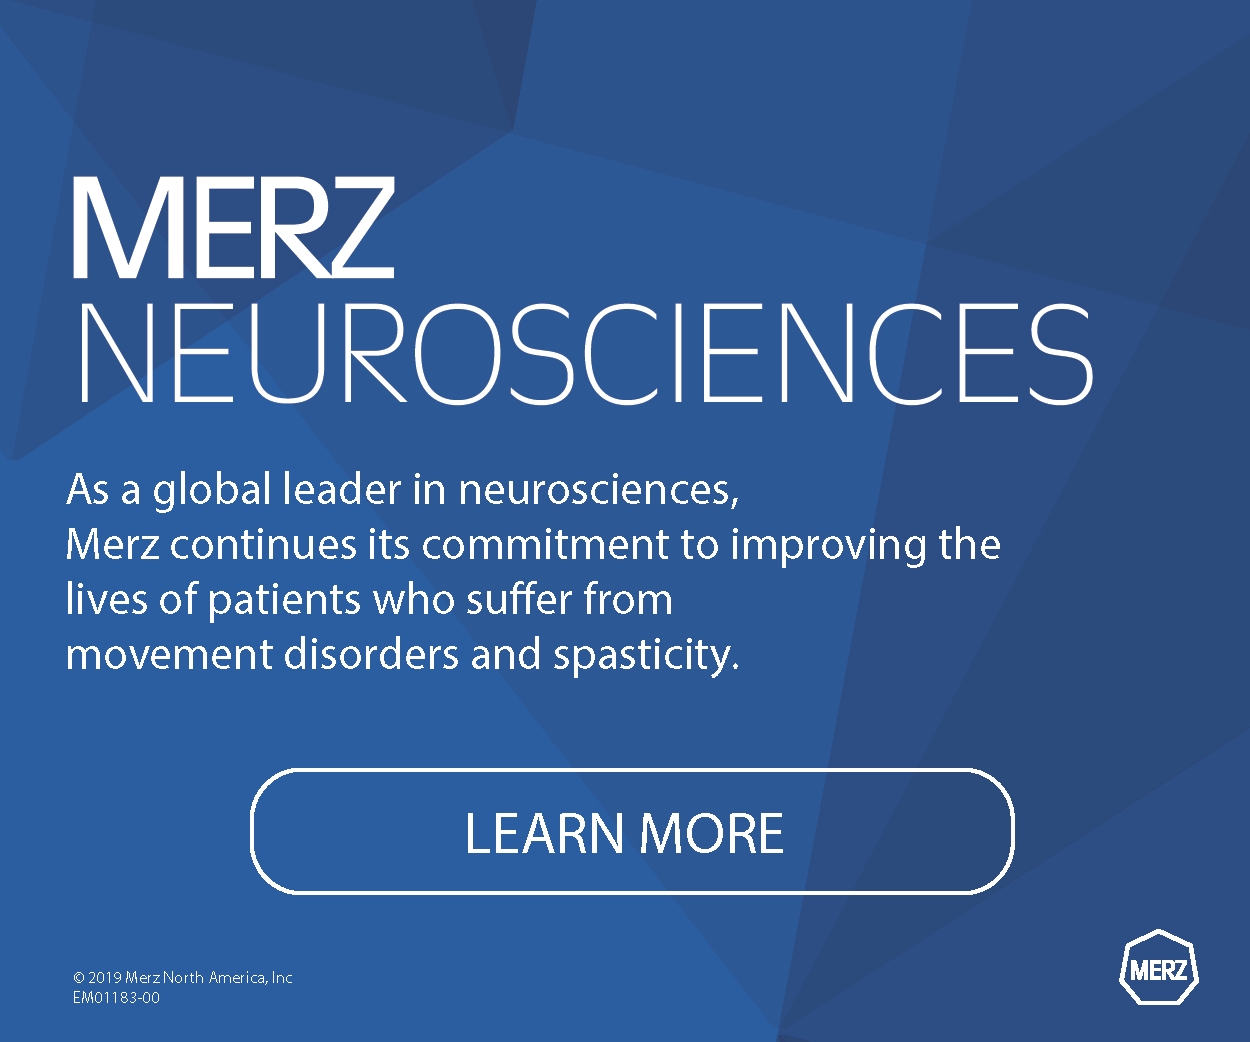 EM01183-00 Merz Neurosciences Digital Advertisement